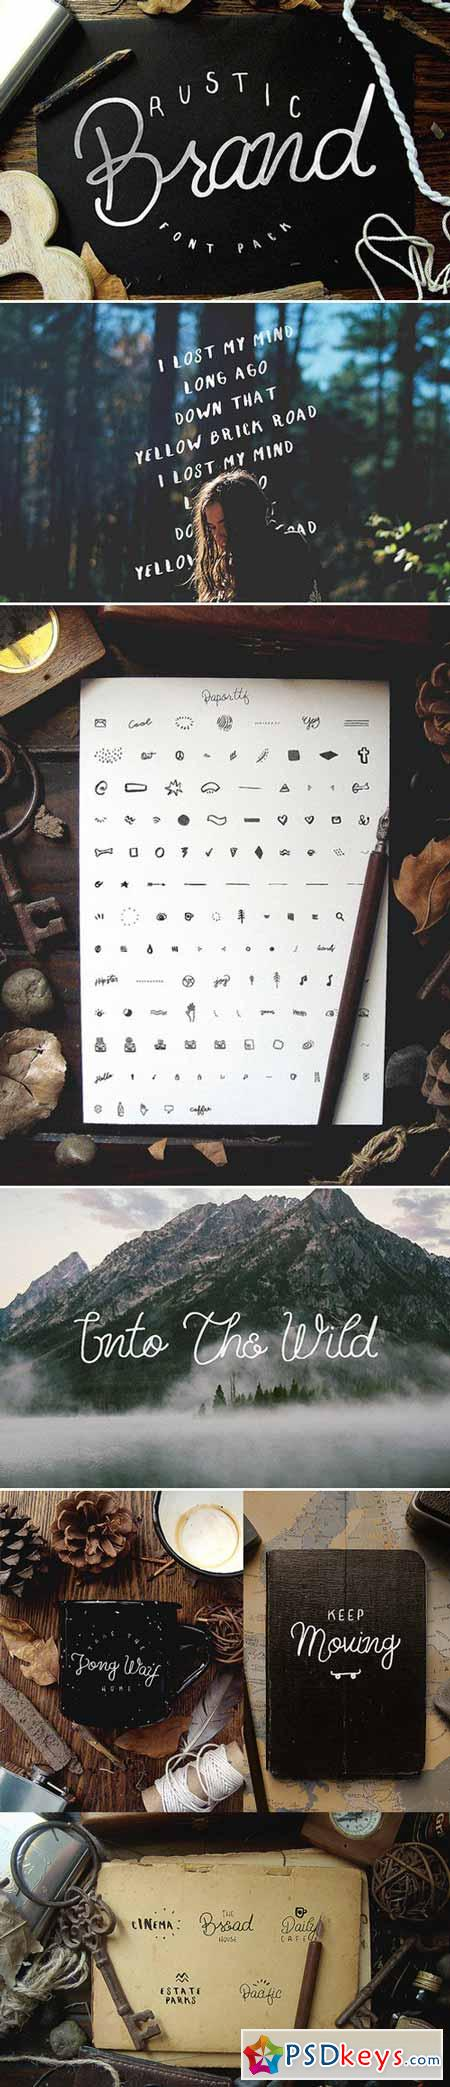 Rustic Brand - 5 Font Pack 395685